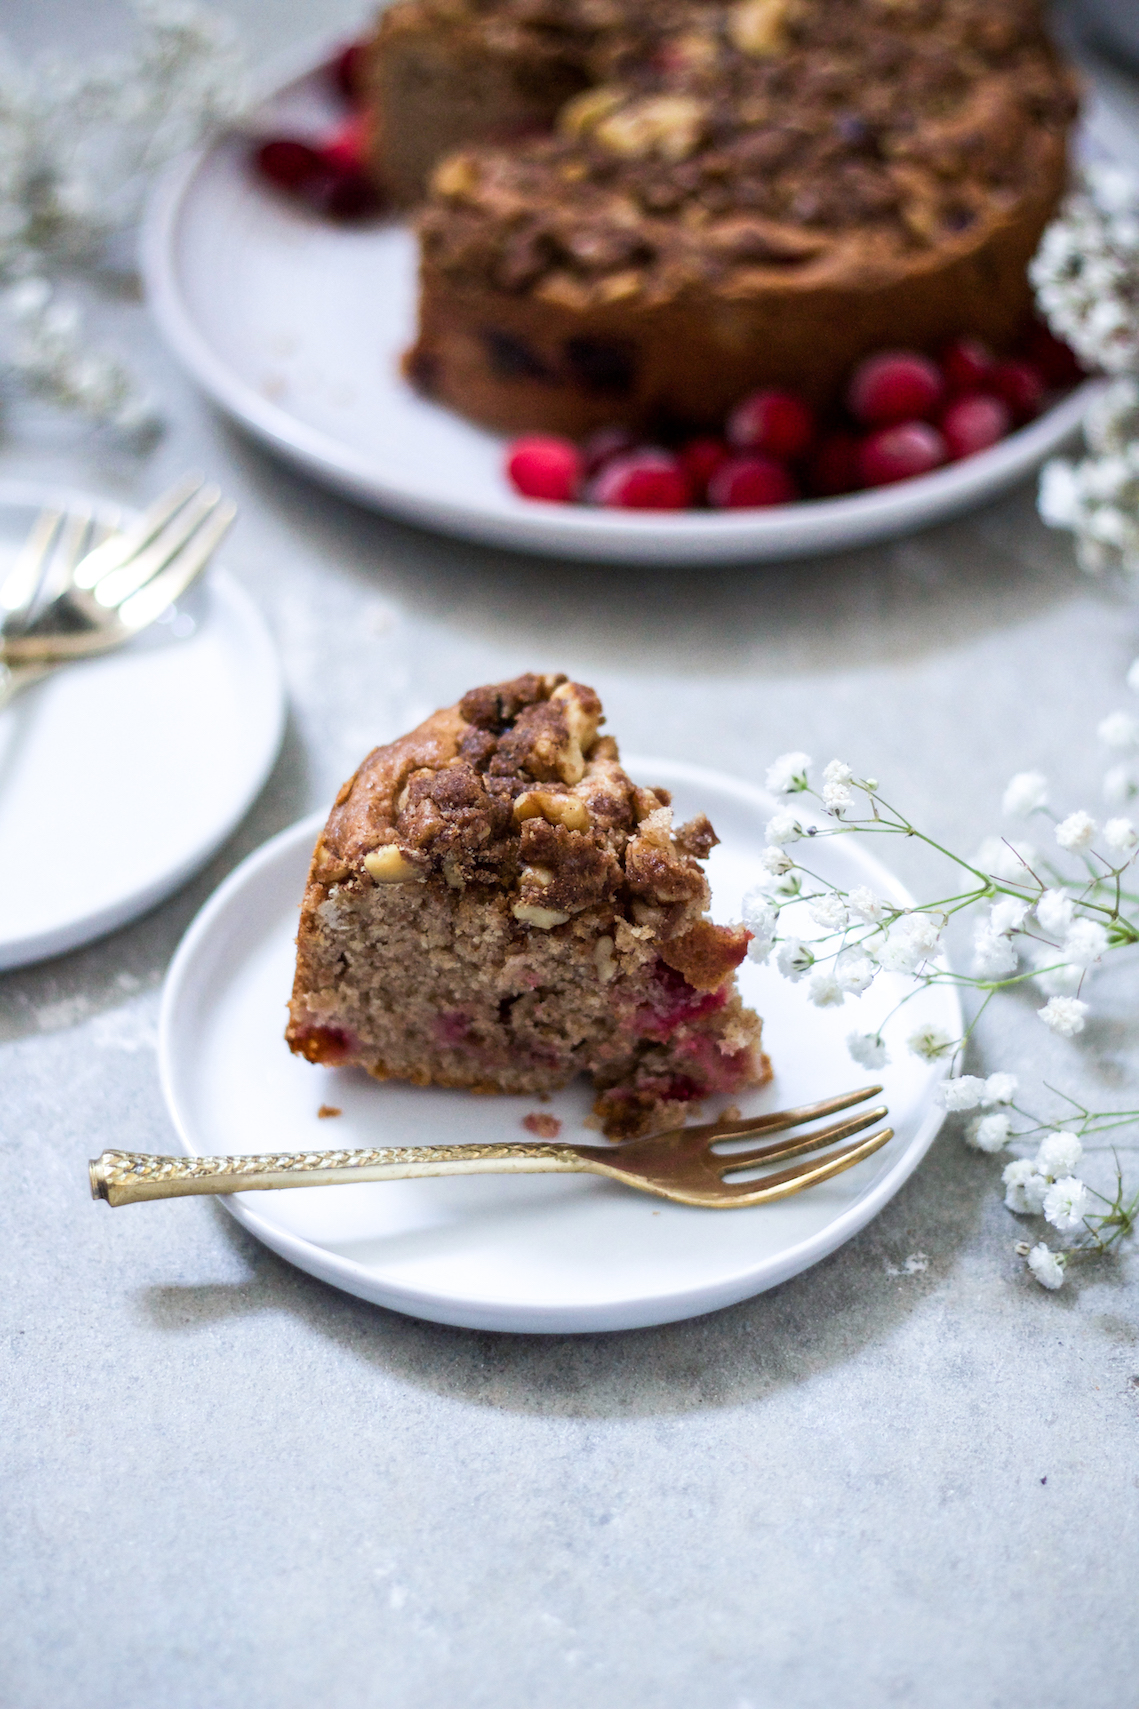 Cranberry coffee cake 6.jpg